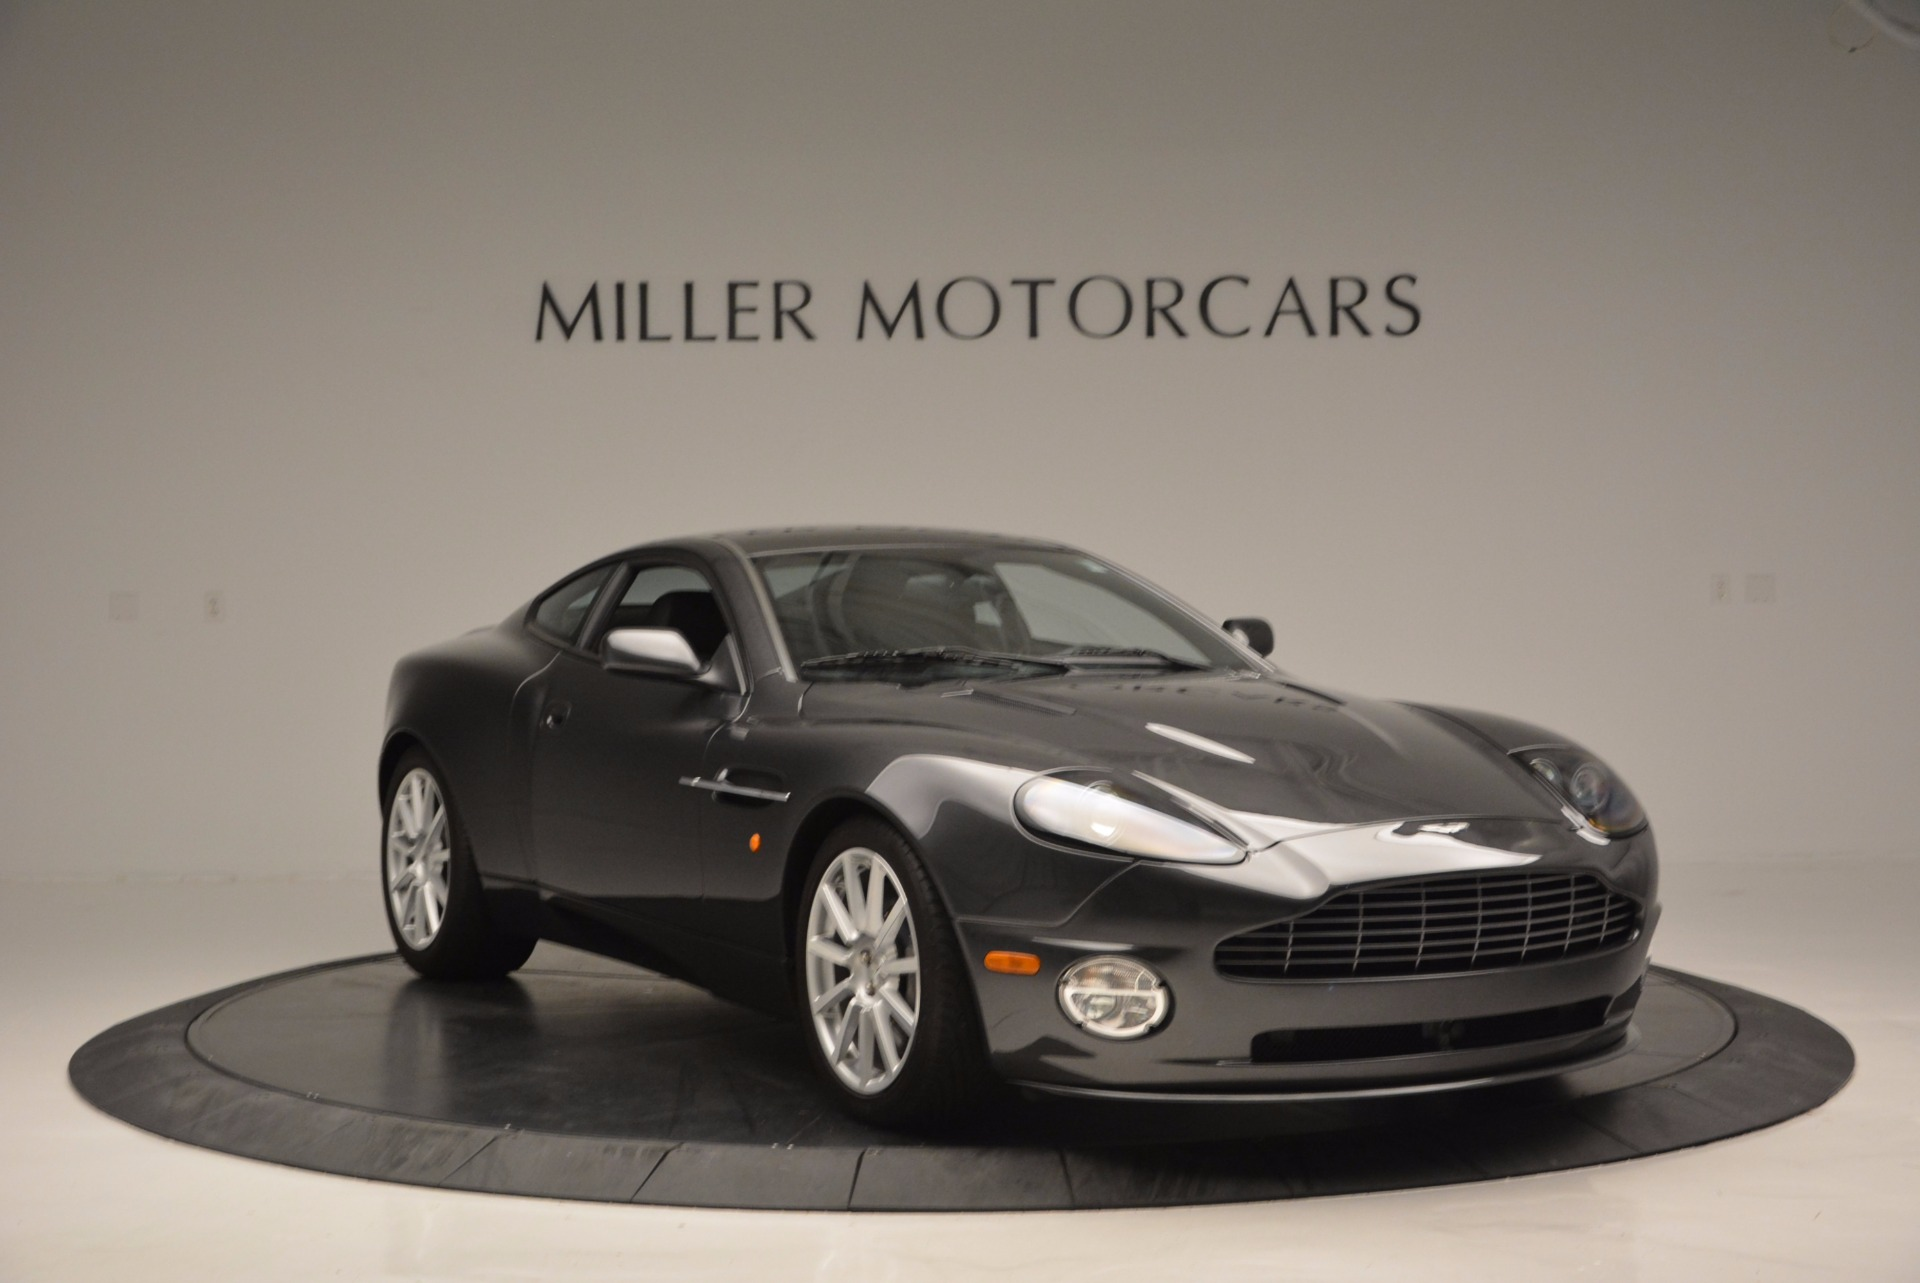 Used 2005 Aston Martin V12 Vanquish S For Sale In Westport, CT 645_p11